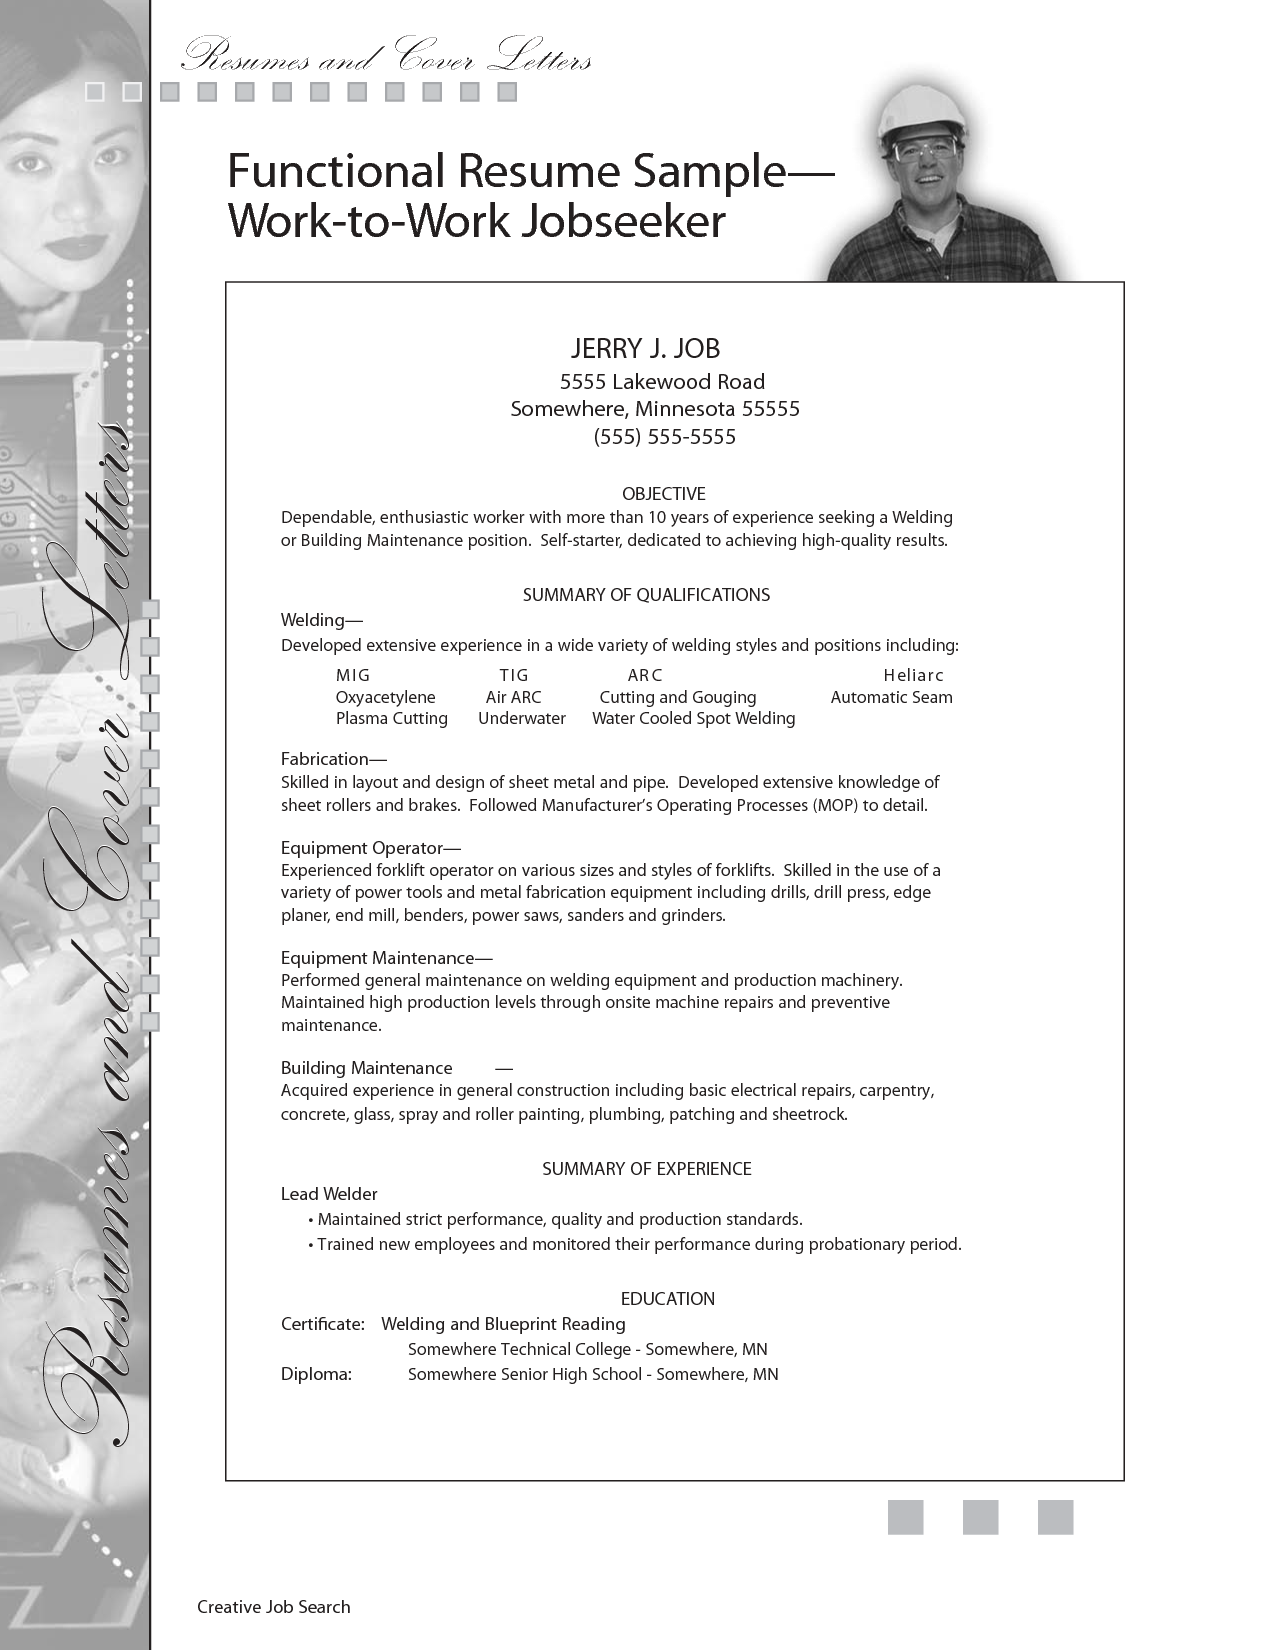 Sample Resume For Welding Position  Sample Building Maintenance